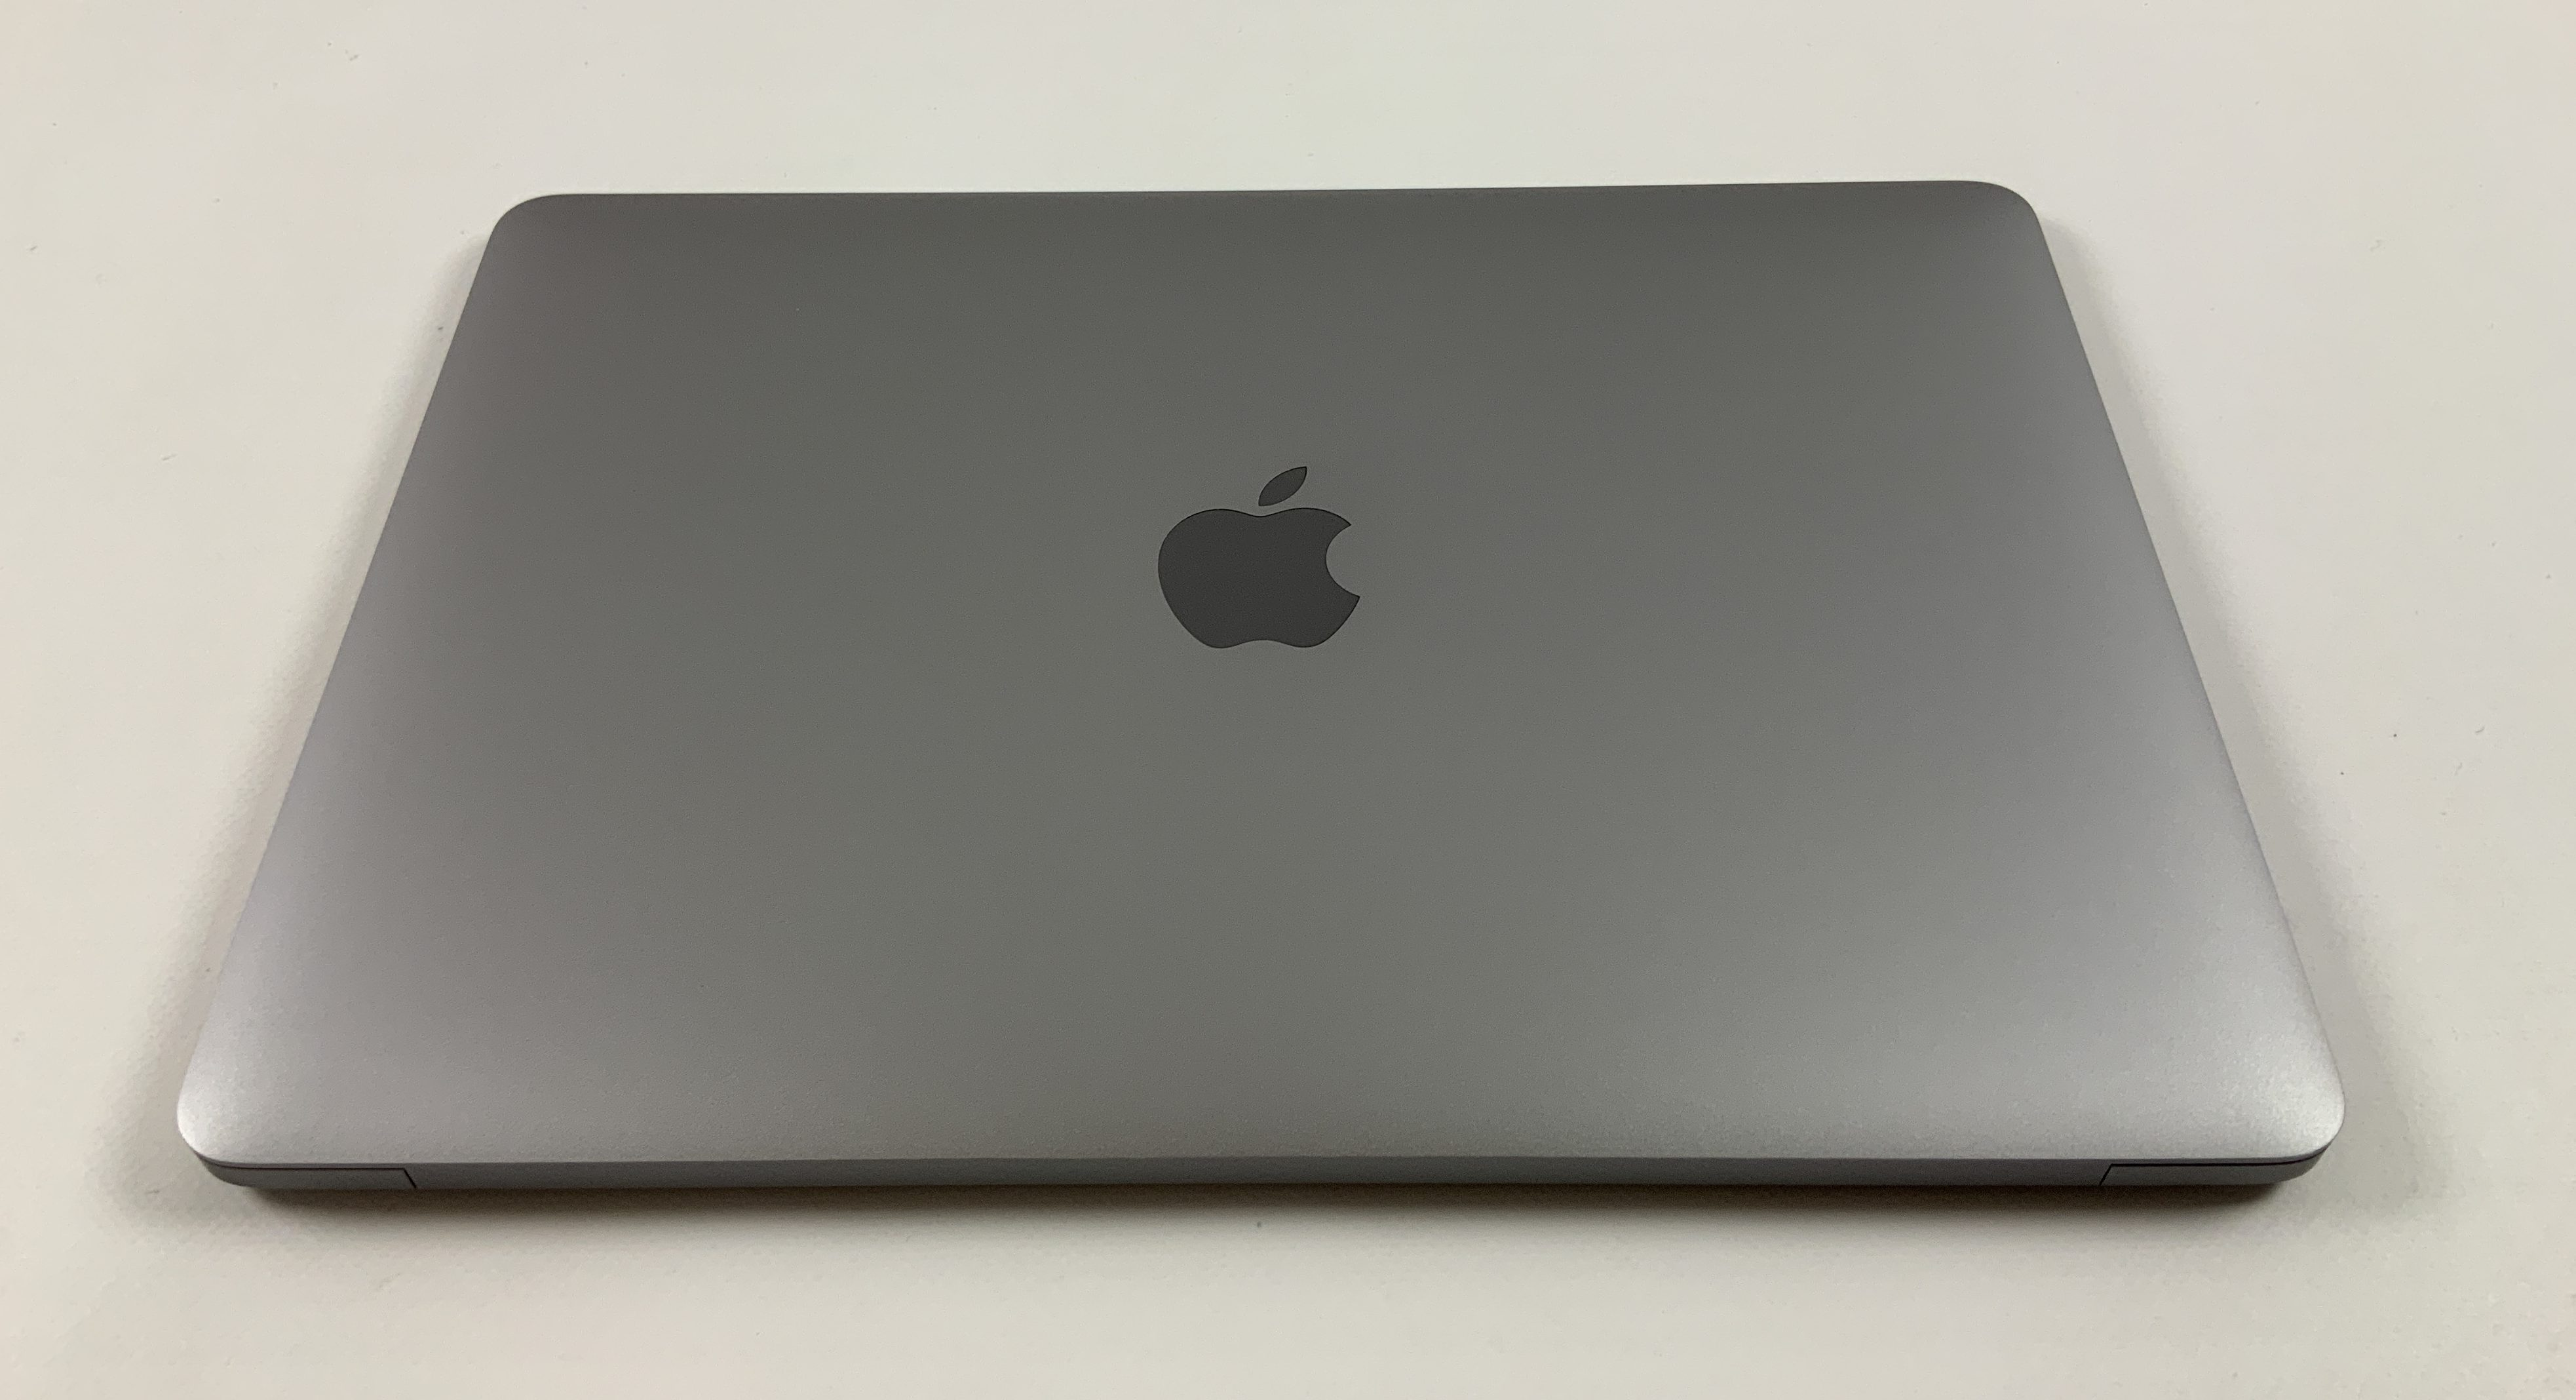 "MacBook 12"" Mid 2017 (Intel Core i7 1.4 GHz 16 GB RAM 512 GB SSD), Space Gray, Intel Core i7 1.4 GHz, 16 GB RAM, 512 GB SSD, imagen 2"